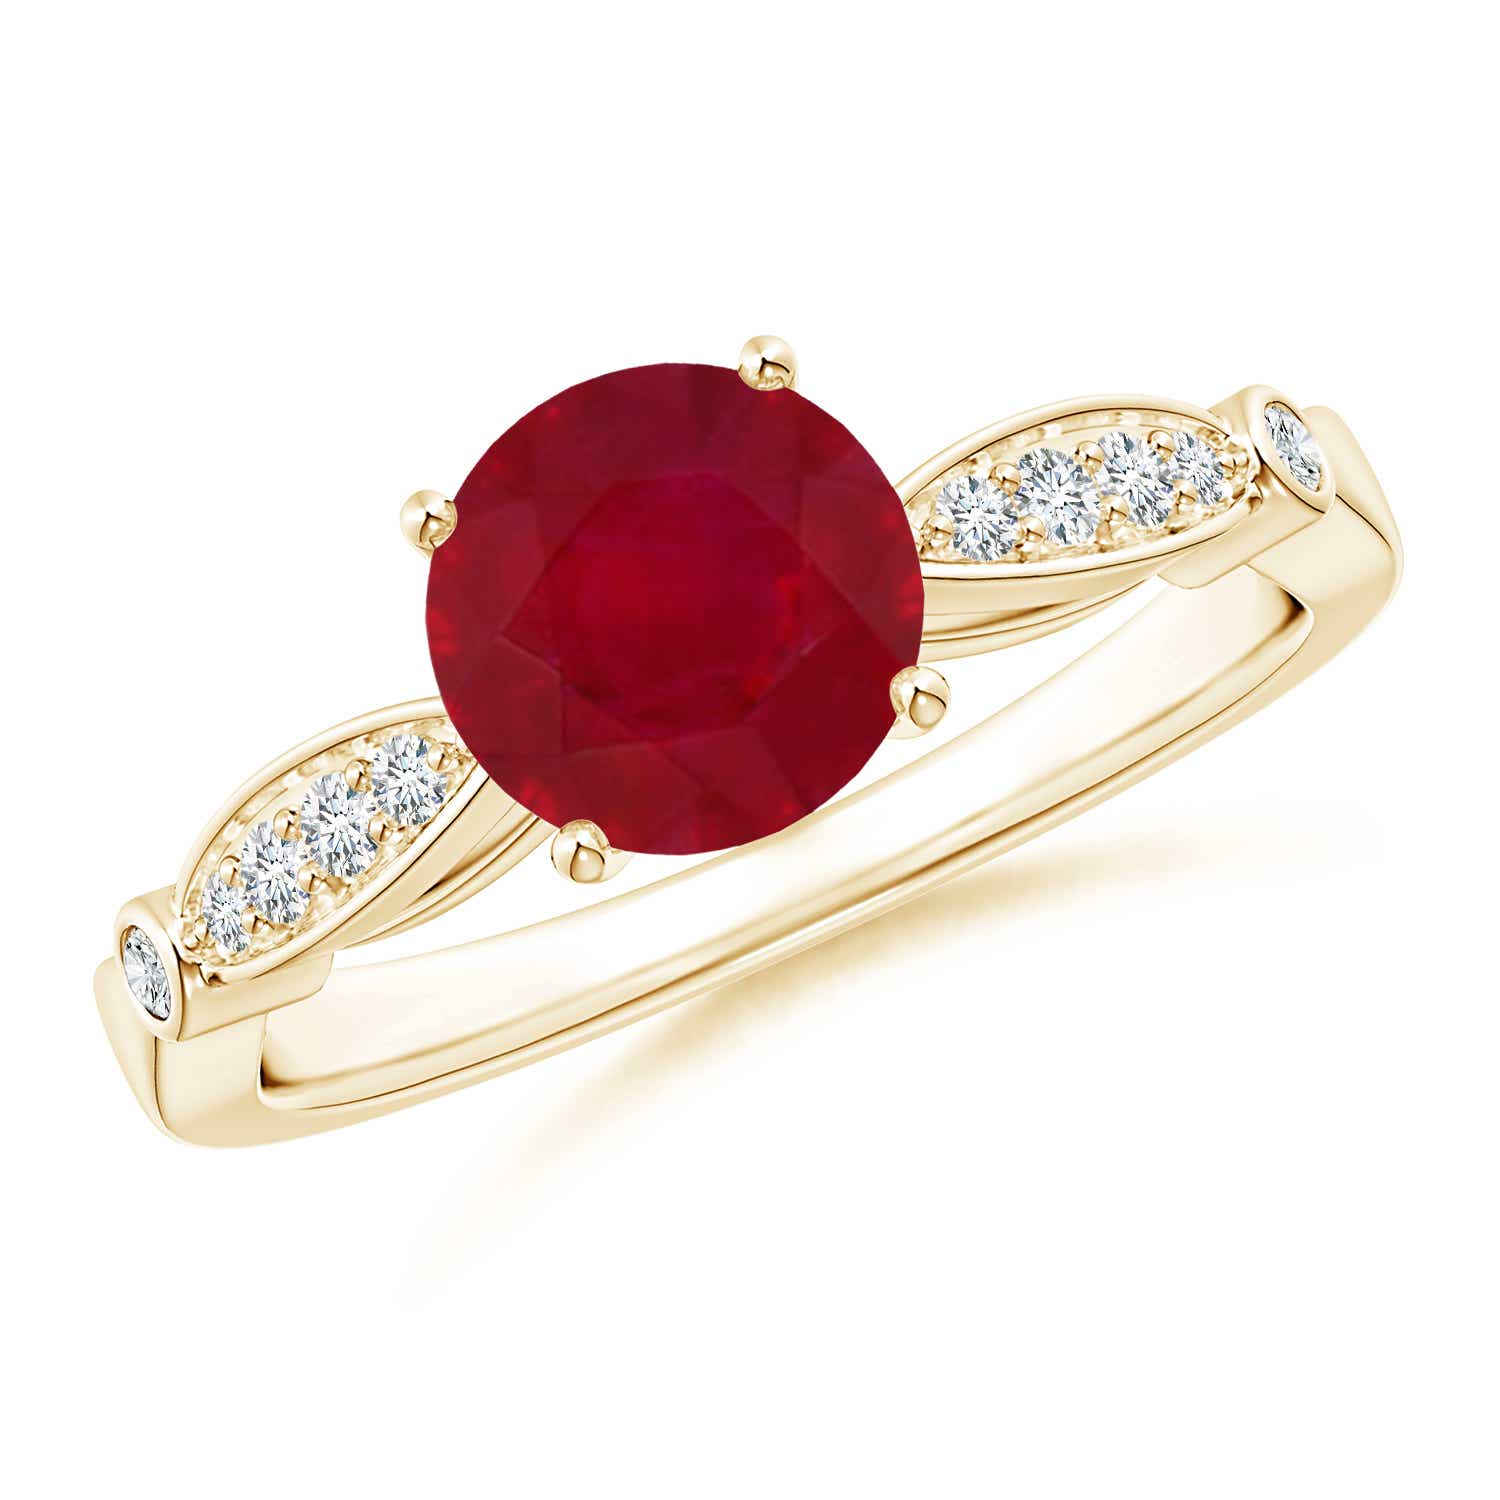 Angara Bezel-Set Vintage Ruby Solitaire Engagement Ring 14k Yellow Gold MZMZZ